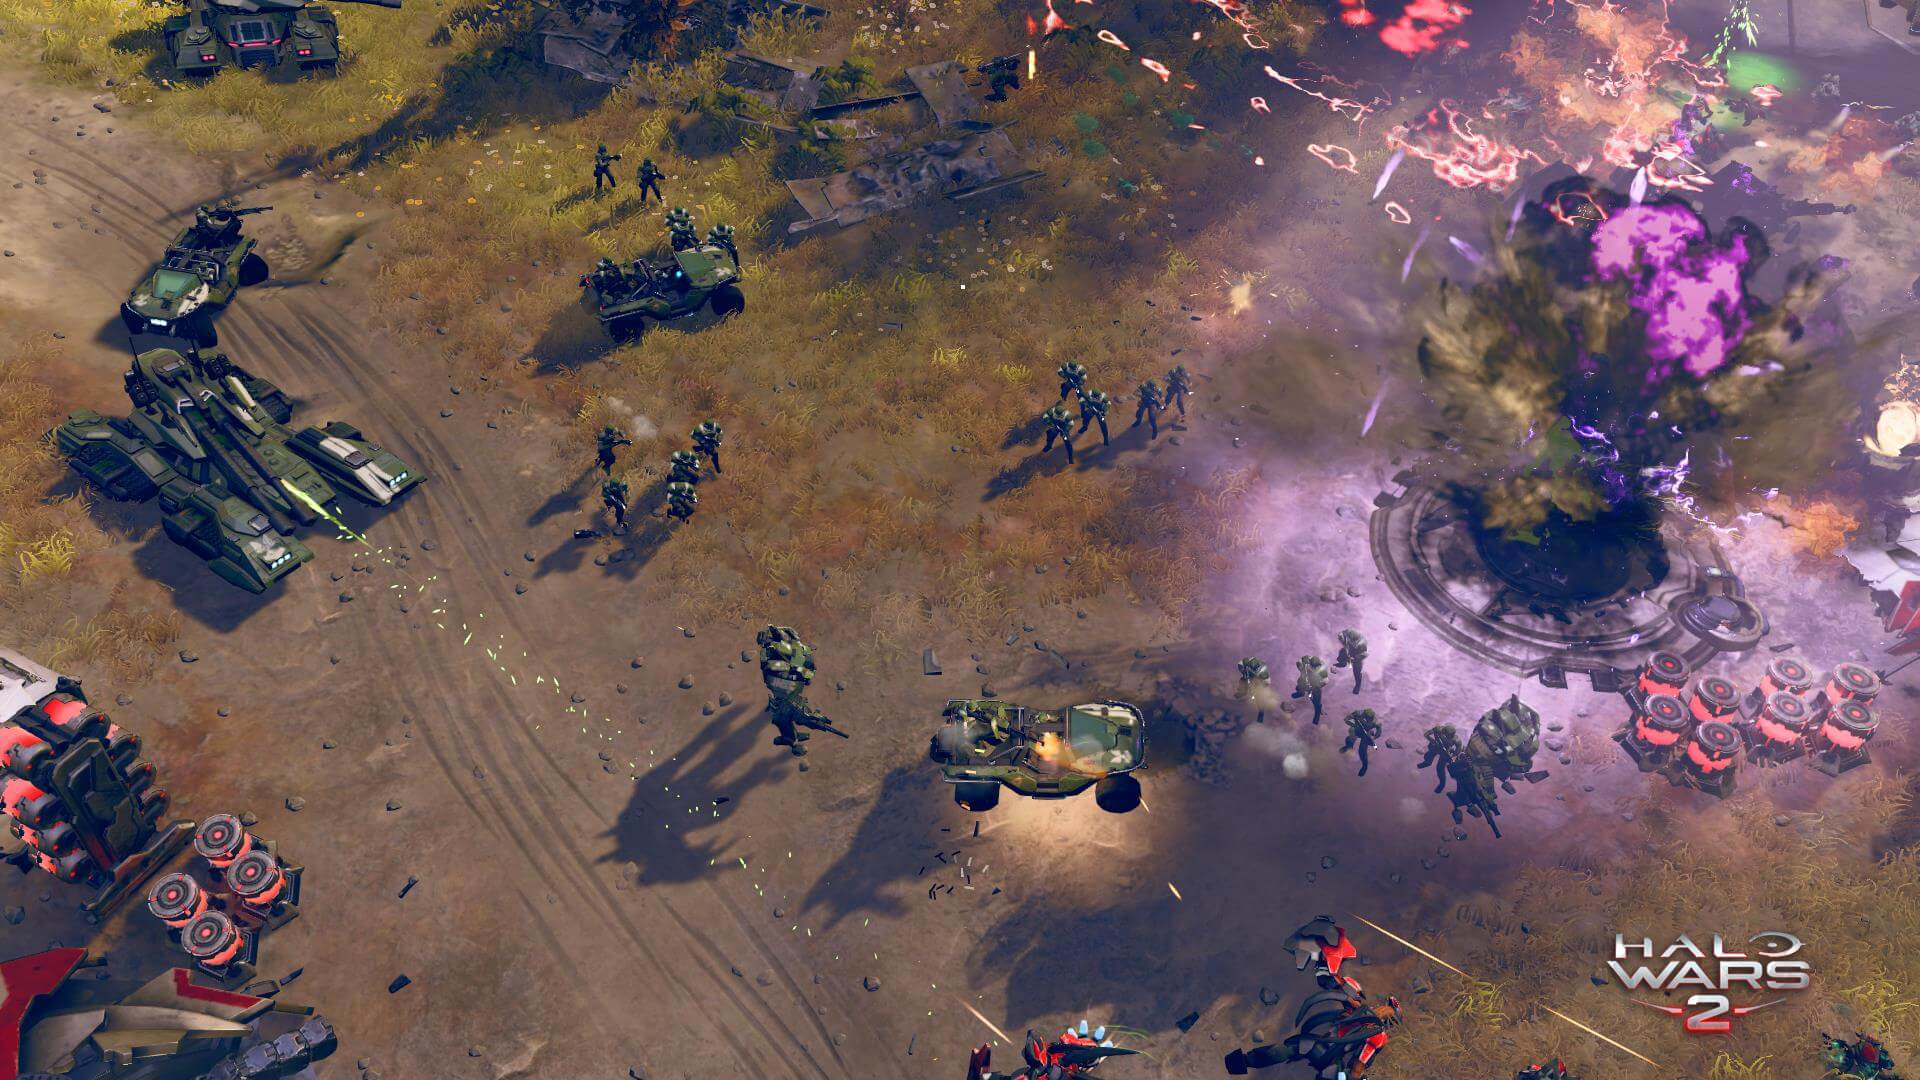 Halo Wars 2 download free